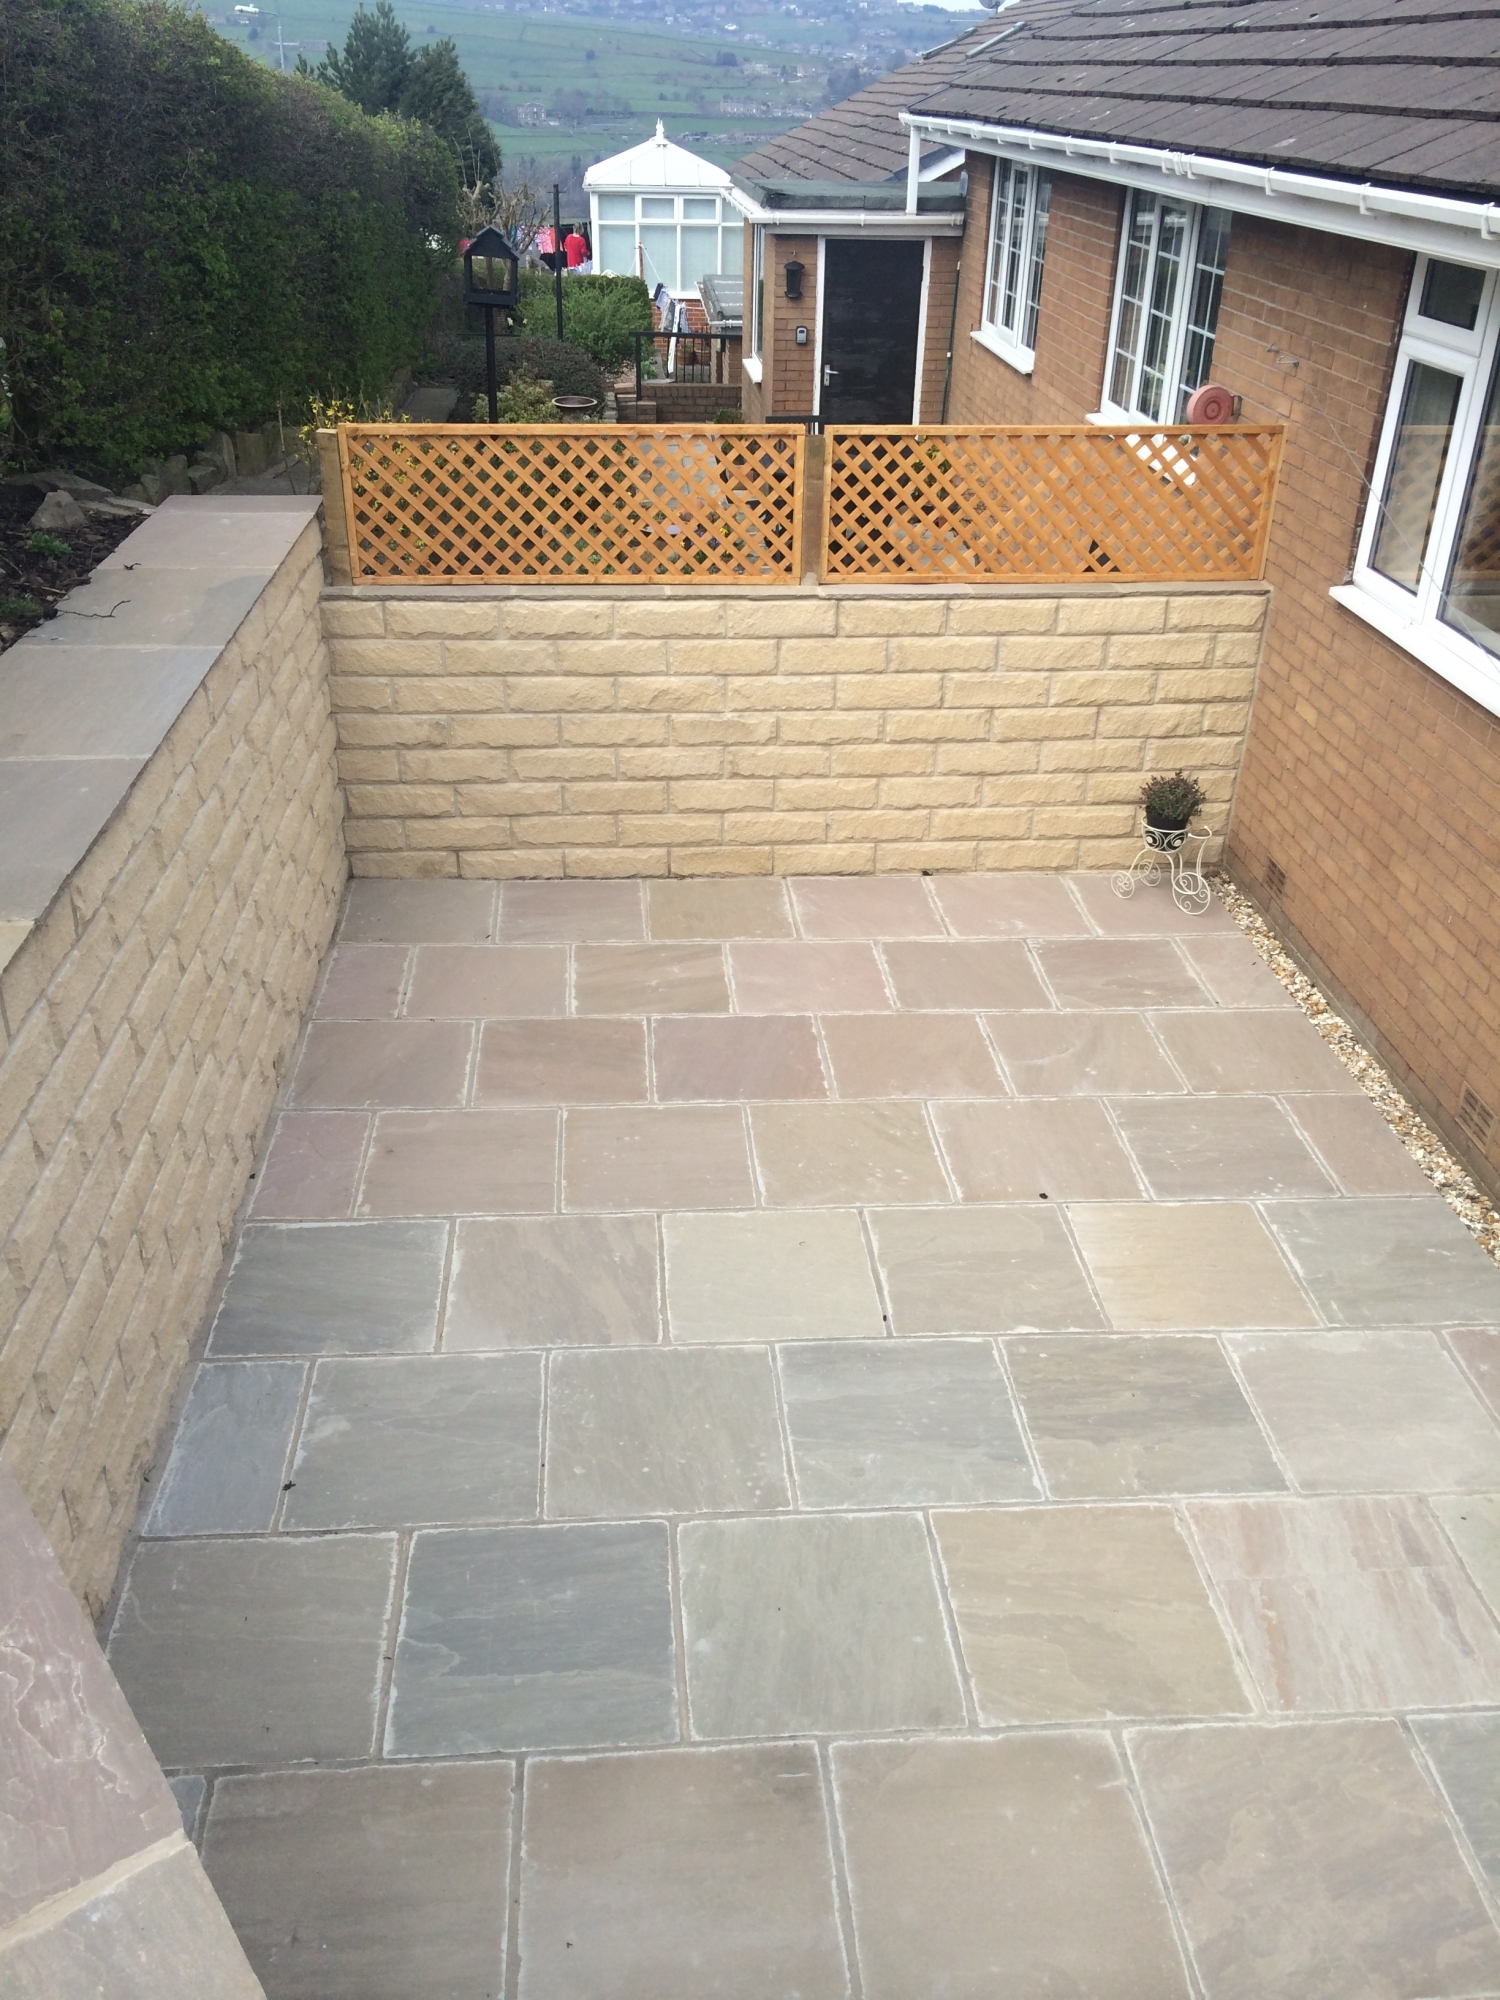 Flagging and patio works in Linthwaite, Huddersfield